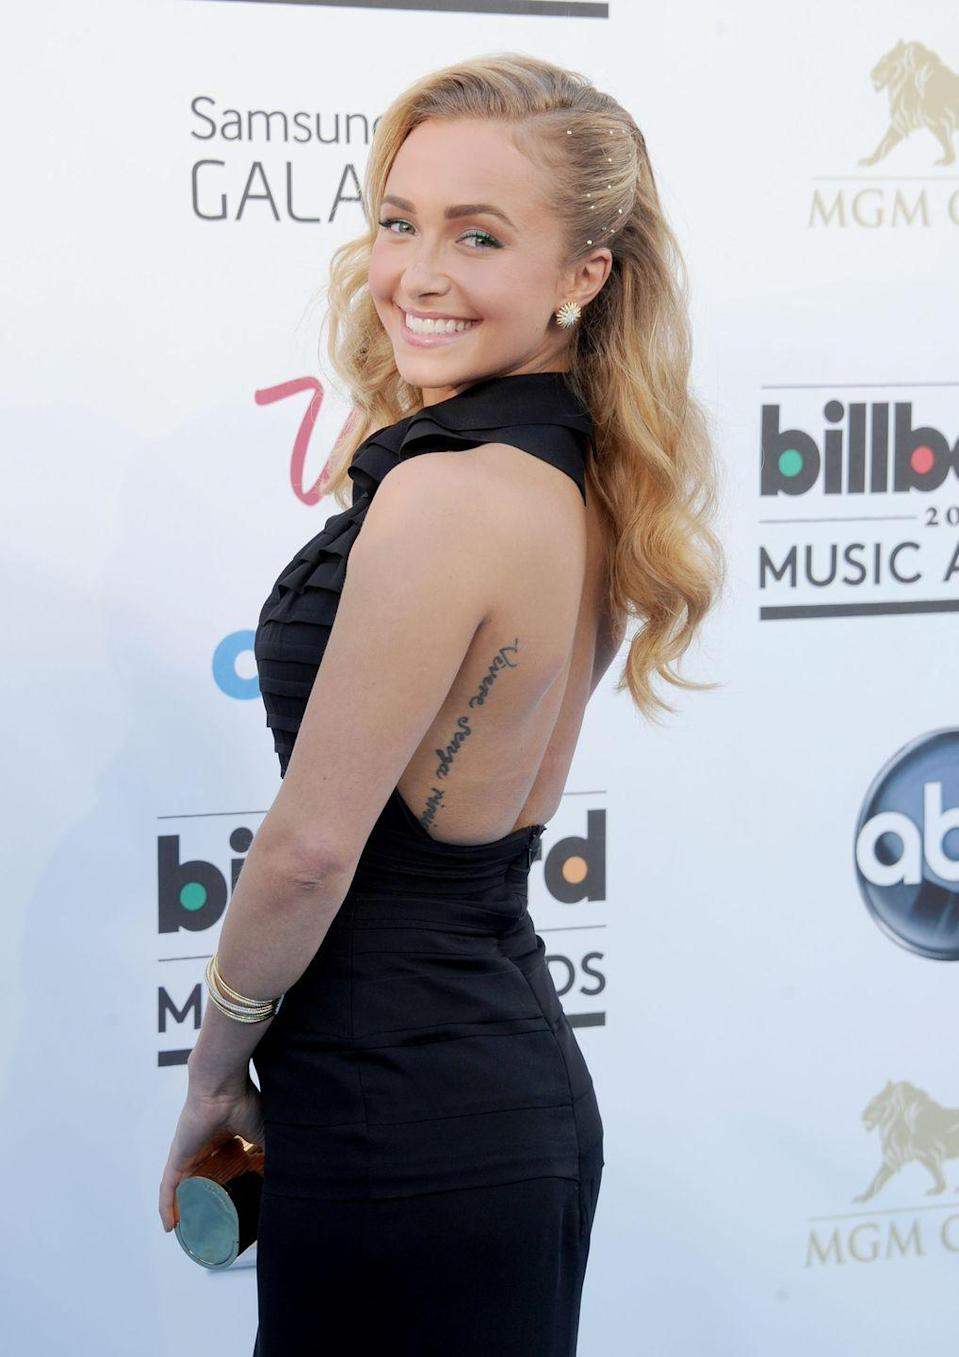 """<p>If you haven't learned yet that you should always (always!) spellcheck your tattoos, Hayden Panettiere is here with another friendly reminder. While the Nashville star intended to get inked with the phrase """"Live without regrets"""" in Italian on her back, the third word is intentionally misspelled with an extra """"i.""""</p><p>While Hayden seemed to take the mistake in stride, telling <em><a href=""""https://www.glamour.com/gallery/hayden-panettiere-may-2013-glamour-cover-shoot-gallery"""" rel=""""nofollow noopener"""" target=""""_blank"""" data-ylk=""""slk:Glamour"""" class=""""link rapid-noclick-resp"""">Glamour</a></em> that since it's spelled wrong, """"I literally have to live by that advice,"""" <em><a href=""""https://www.dailymail.co.uk/tvshowbiz/article-2408535/Hayden-Panettiere-displays-partial-removal-misspelled-tattoo-Miami-beach-bikini.html"""" rel=""""nofollow noopener"""" target=""""_blank"""" data-ylk=""""slk:the Daily Mail"""" class=""""link rapid-noclick-resp"""">the Daily Mail</a></em> reported later that the actress was in the process of getting it removed.</p>"""